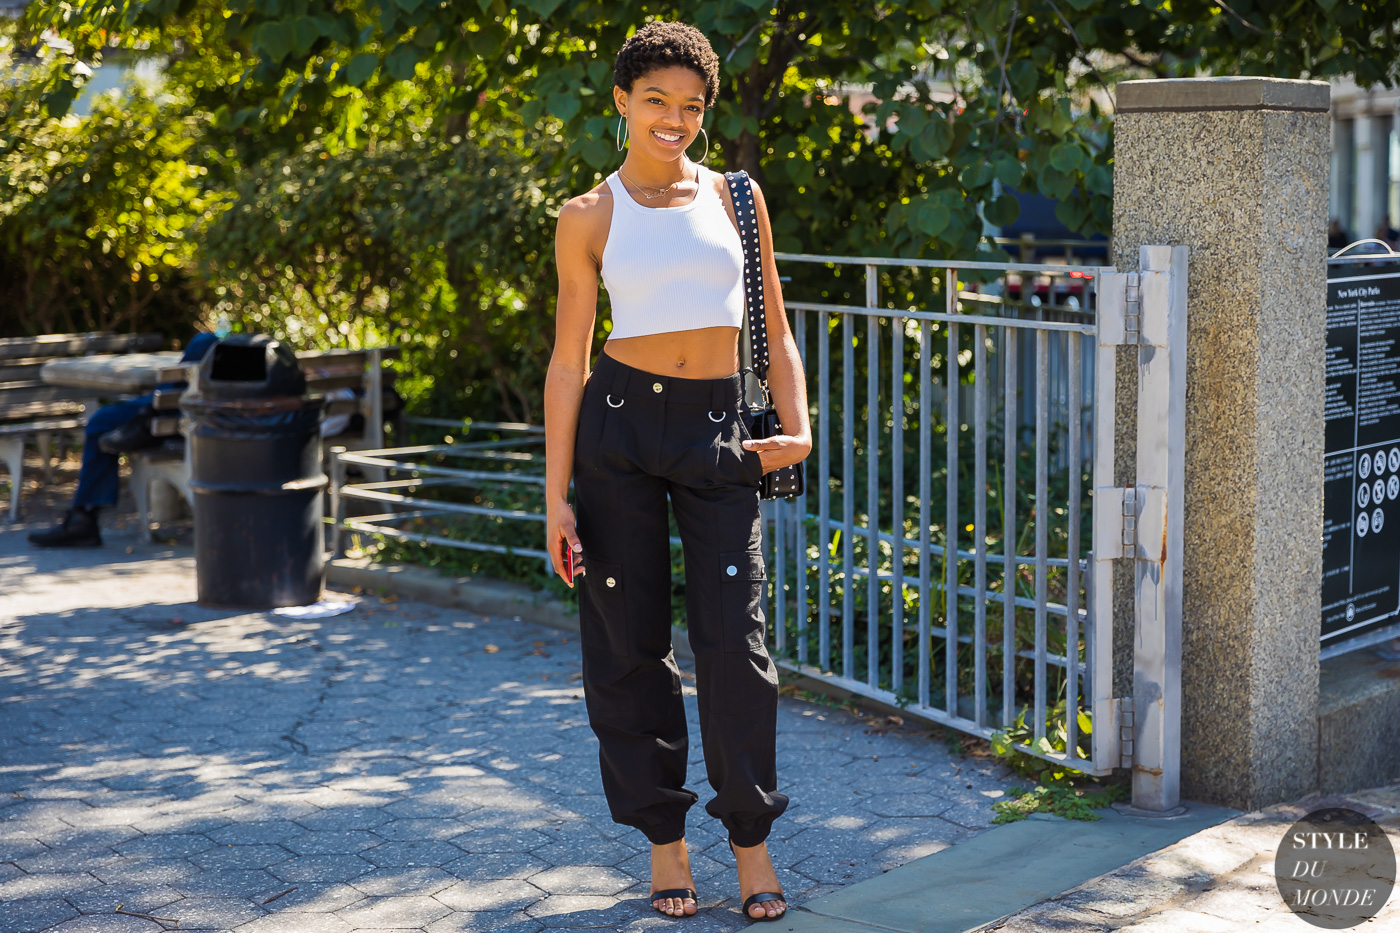 Selah Marley by STYLEDUMONDE Street Style Fashion Photography